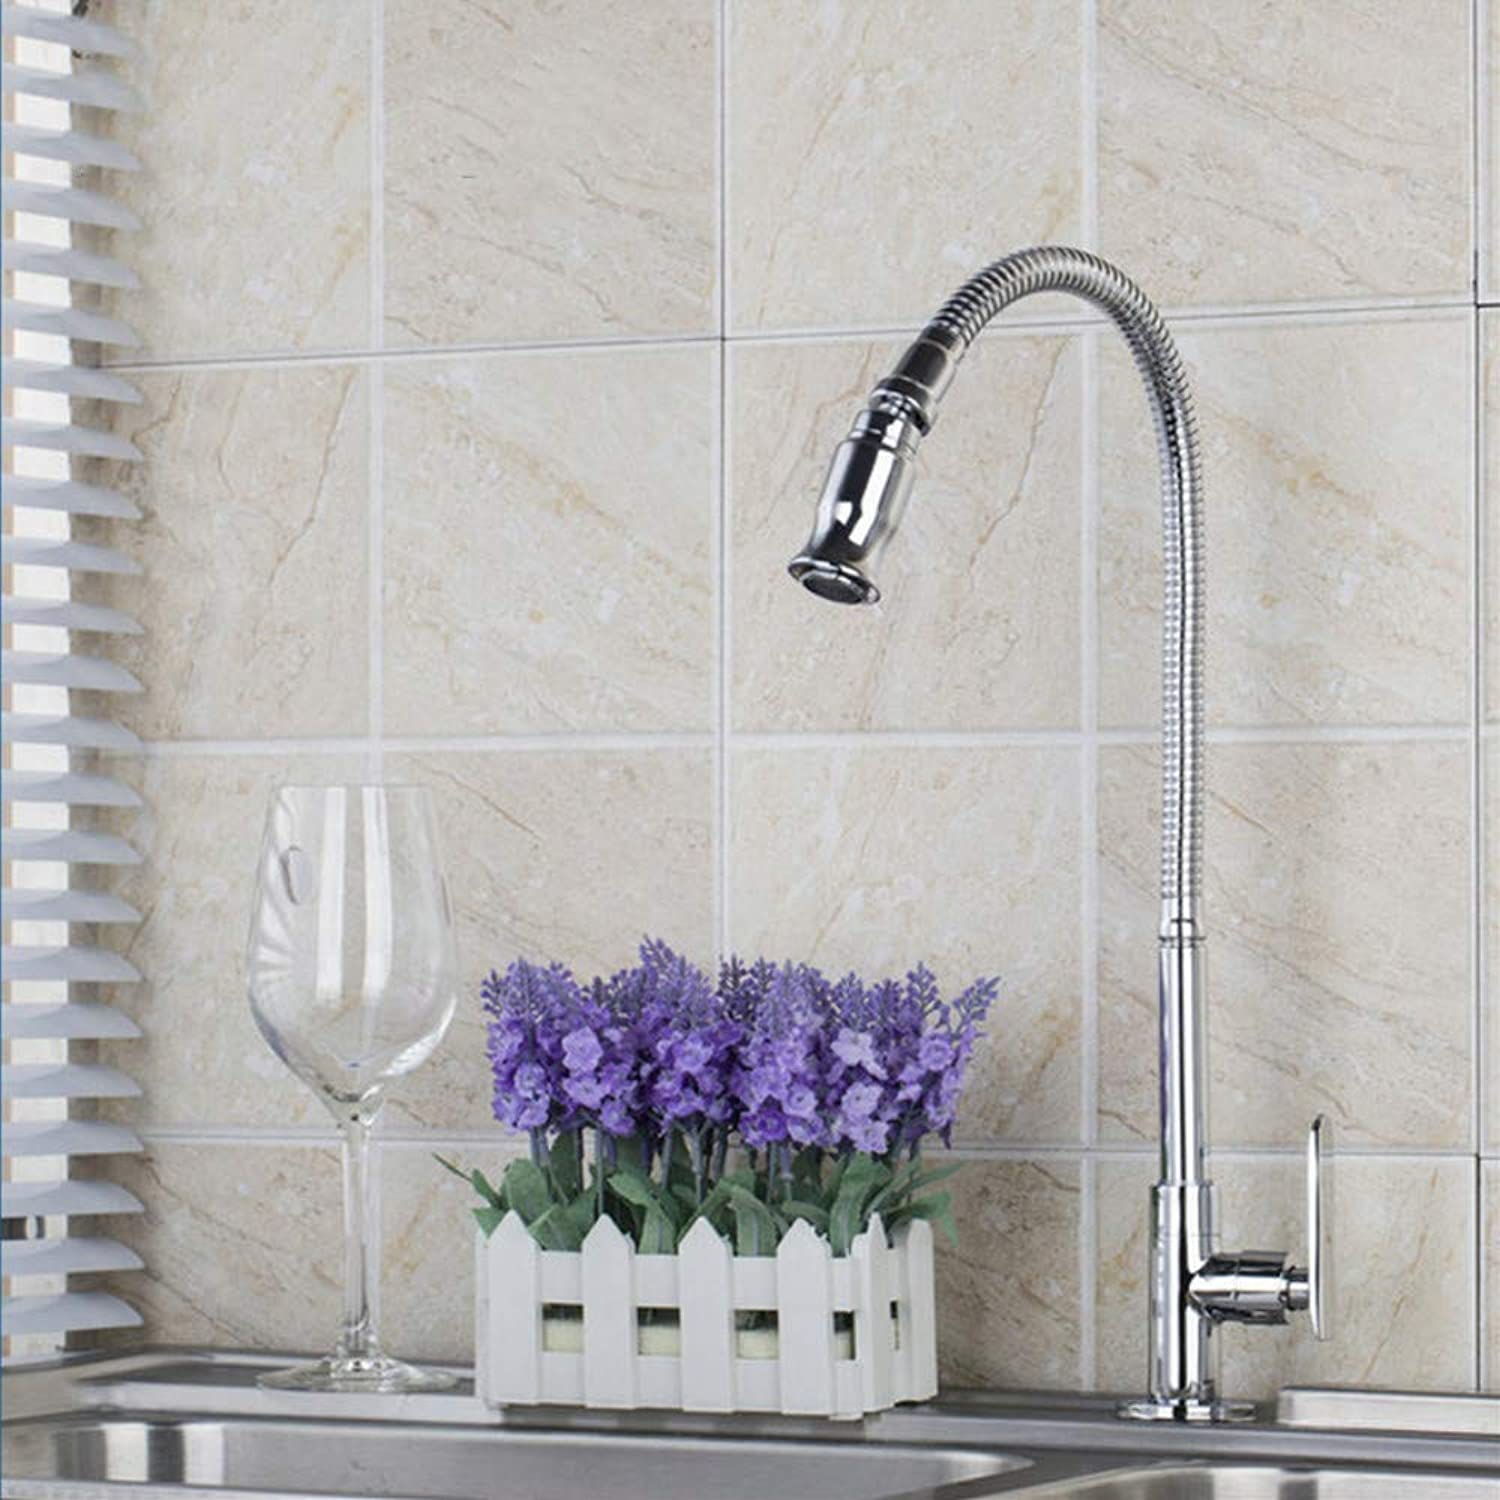 All Around redate Swivel Kitchen Faucets with Plumbing Hose Water Outlet Tap Faucet Deck Mounted